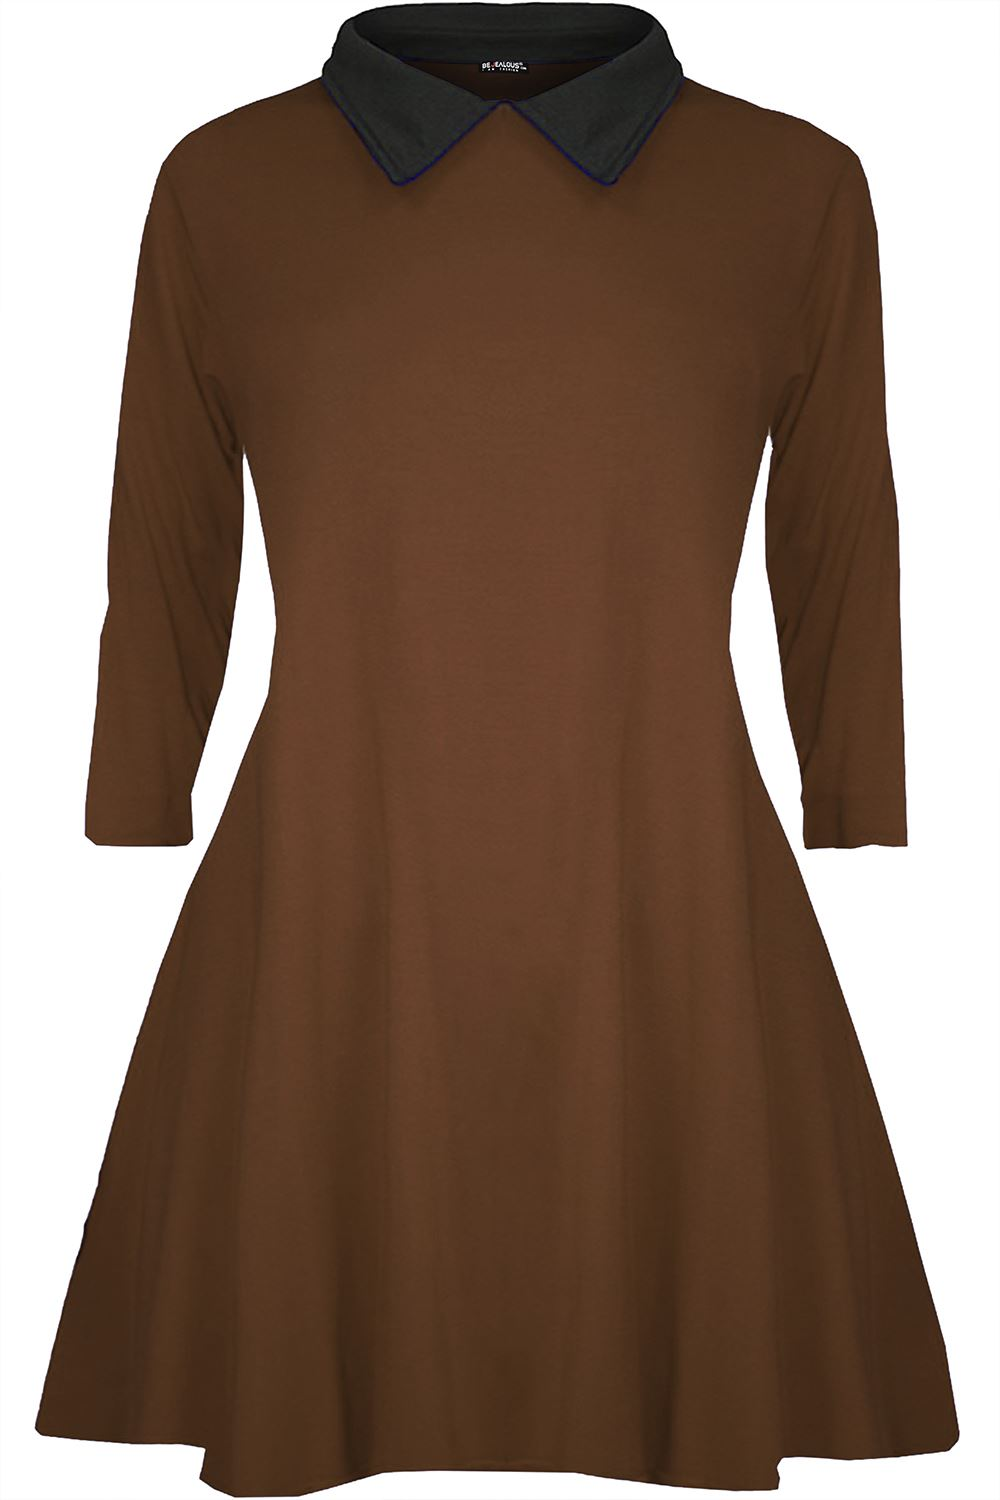 Details about Plus Size Ladies Womens Long Sleeve Peter Pan Collar Skater  Flared Swing Dress